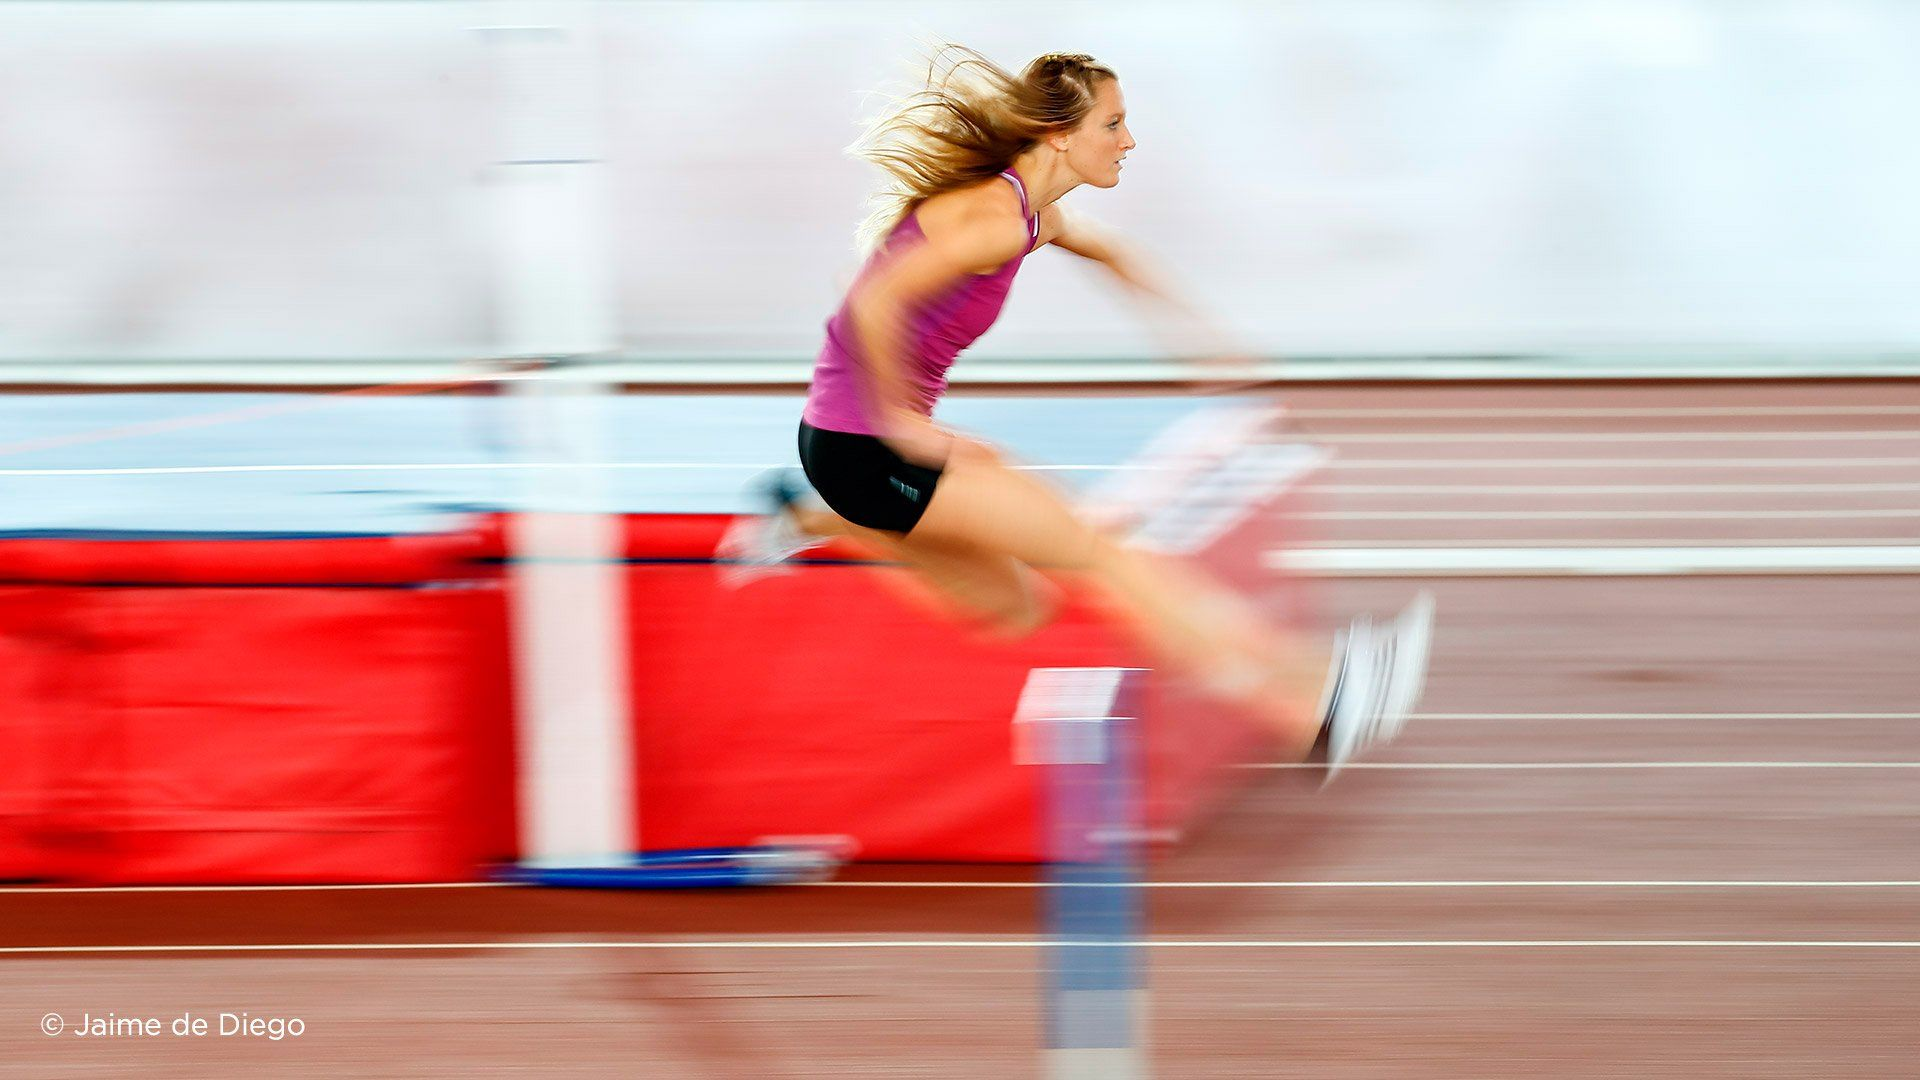 EF 400mm F2.8l IS III USM female athlete hurdles sample